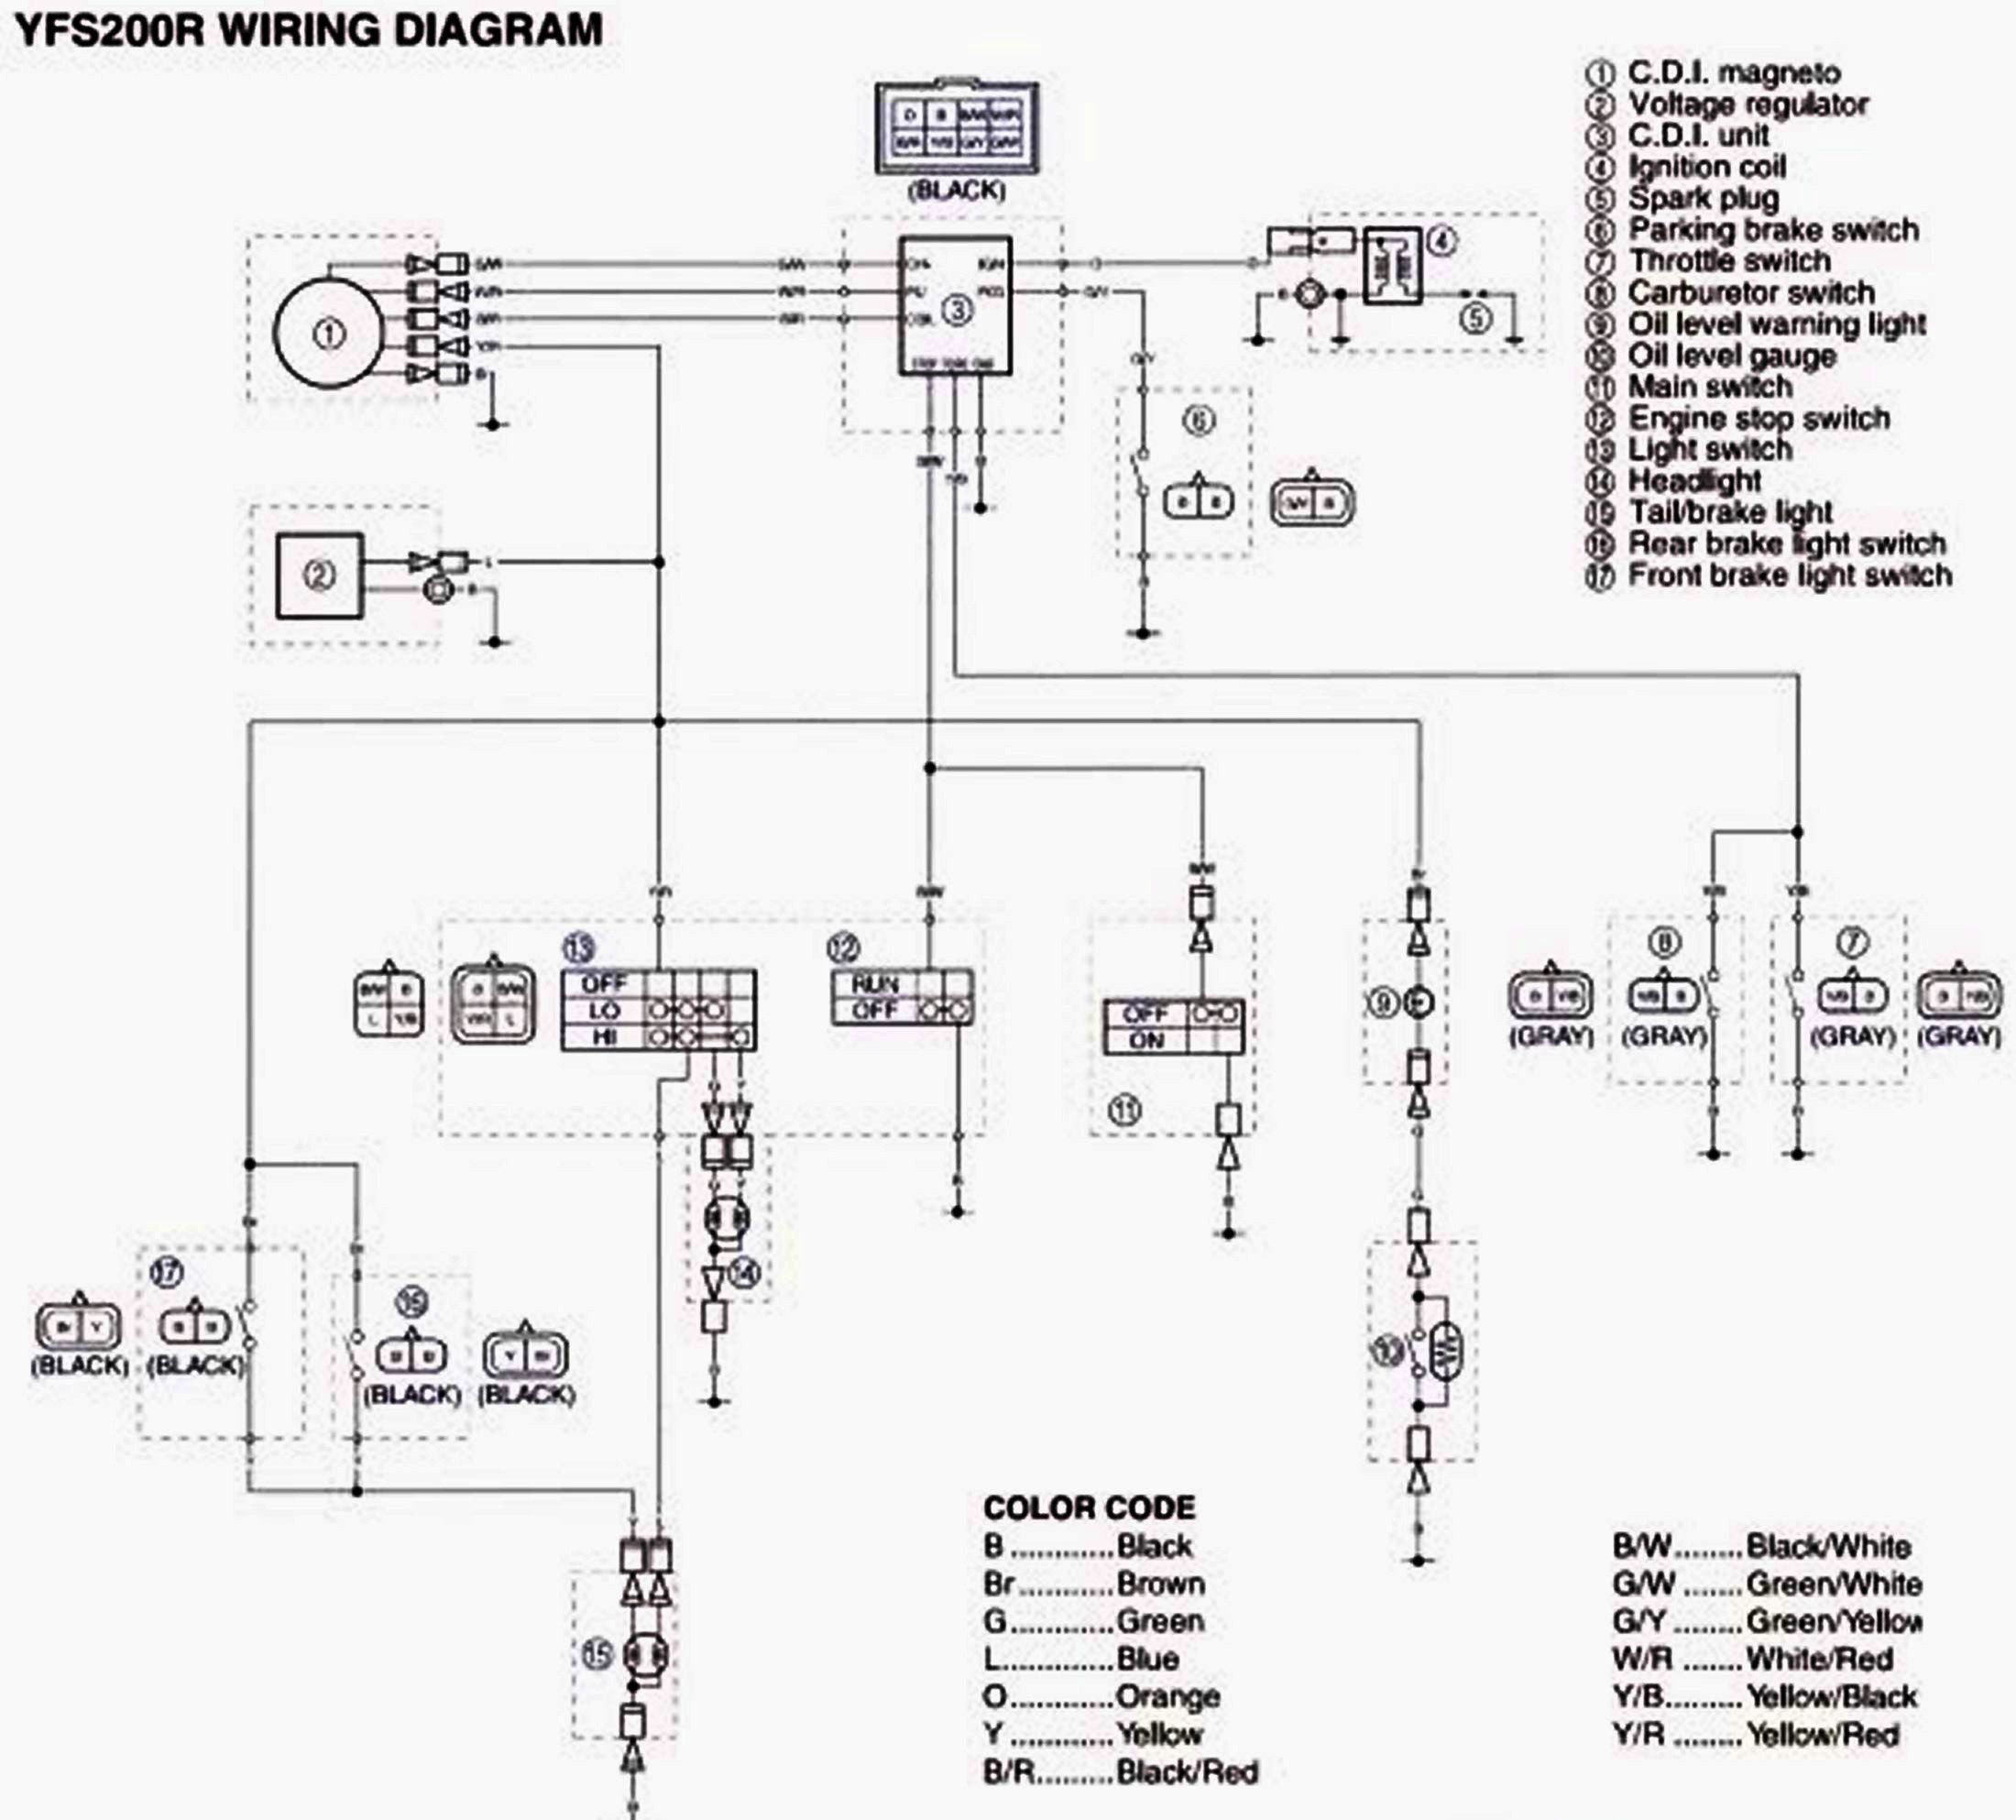 1977 yamaha enticer 250 wiring diagram wiring library gauges for yamaha 30 hp wiring stock wiring diagrams blasterforum com yamaha engine schematics yamaha wiring schematic